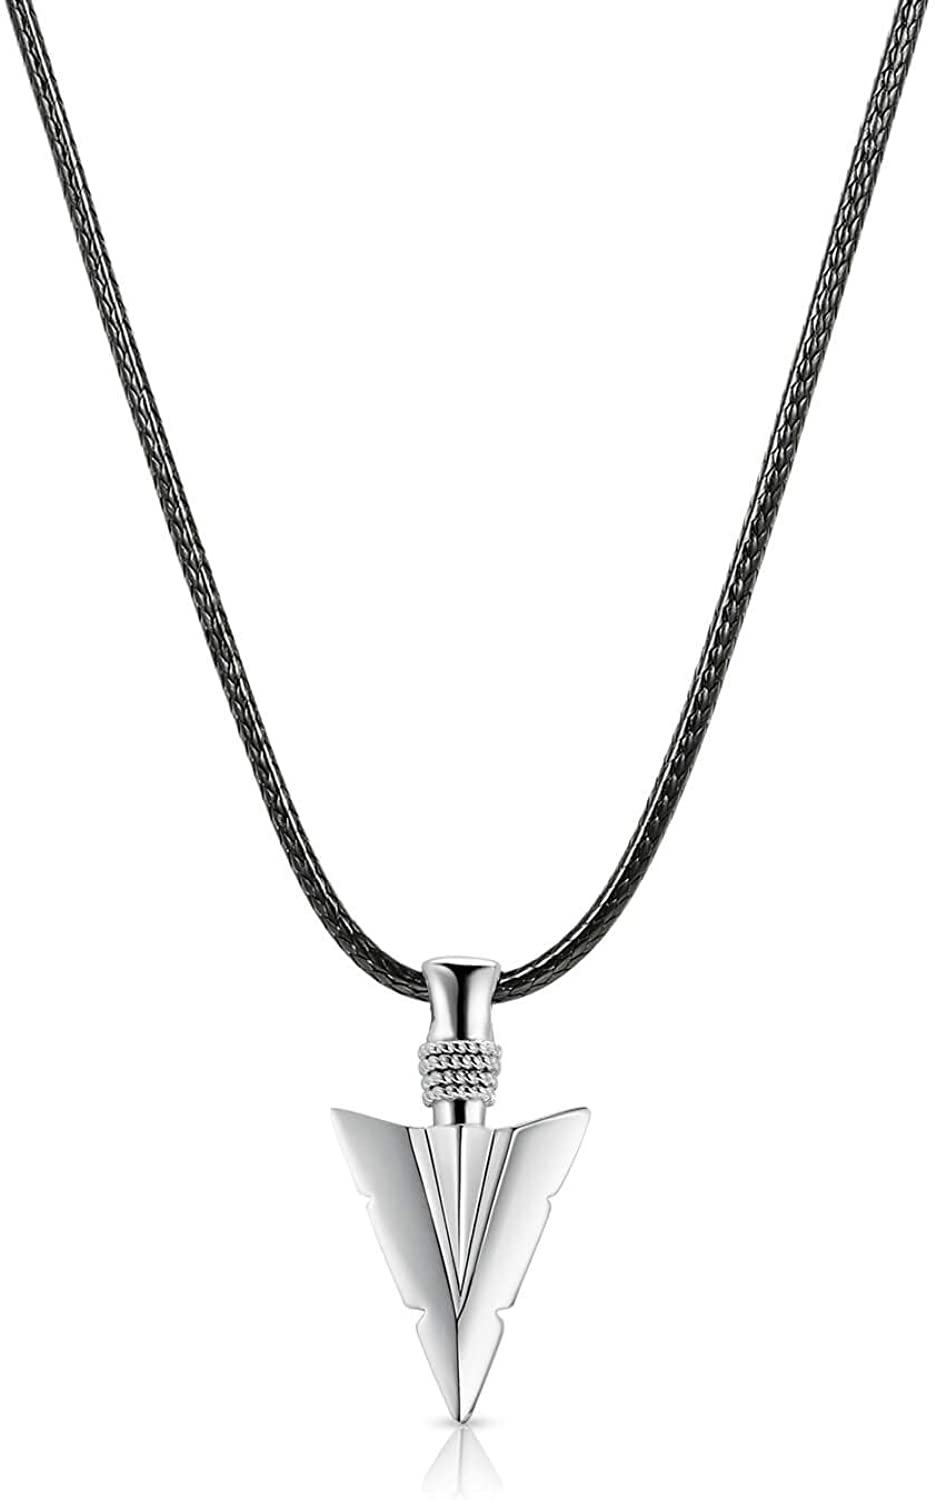 Fathers Day Gifts 925 Sterling Silver Men Jewelry Arrowhead Pendant Necklace for Dad Brother Husband Boyfriend with Woven Wax Rope Chain, 20''